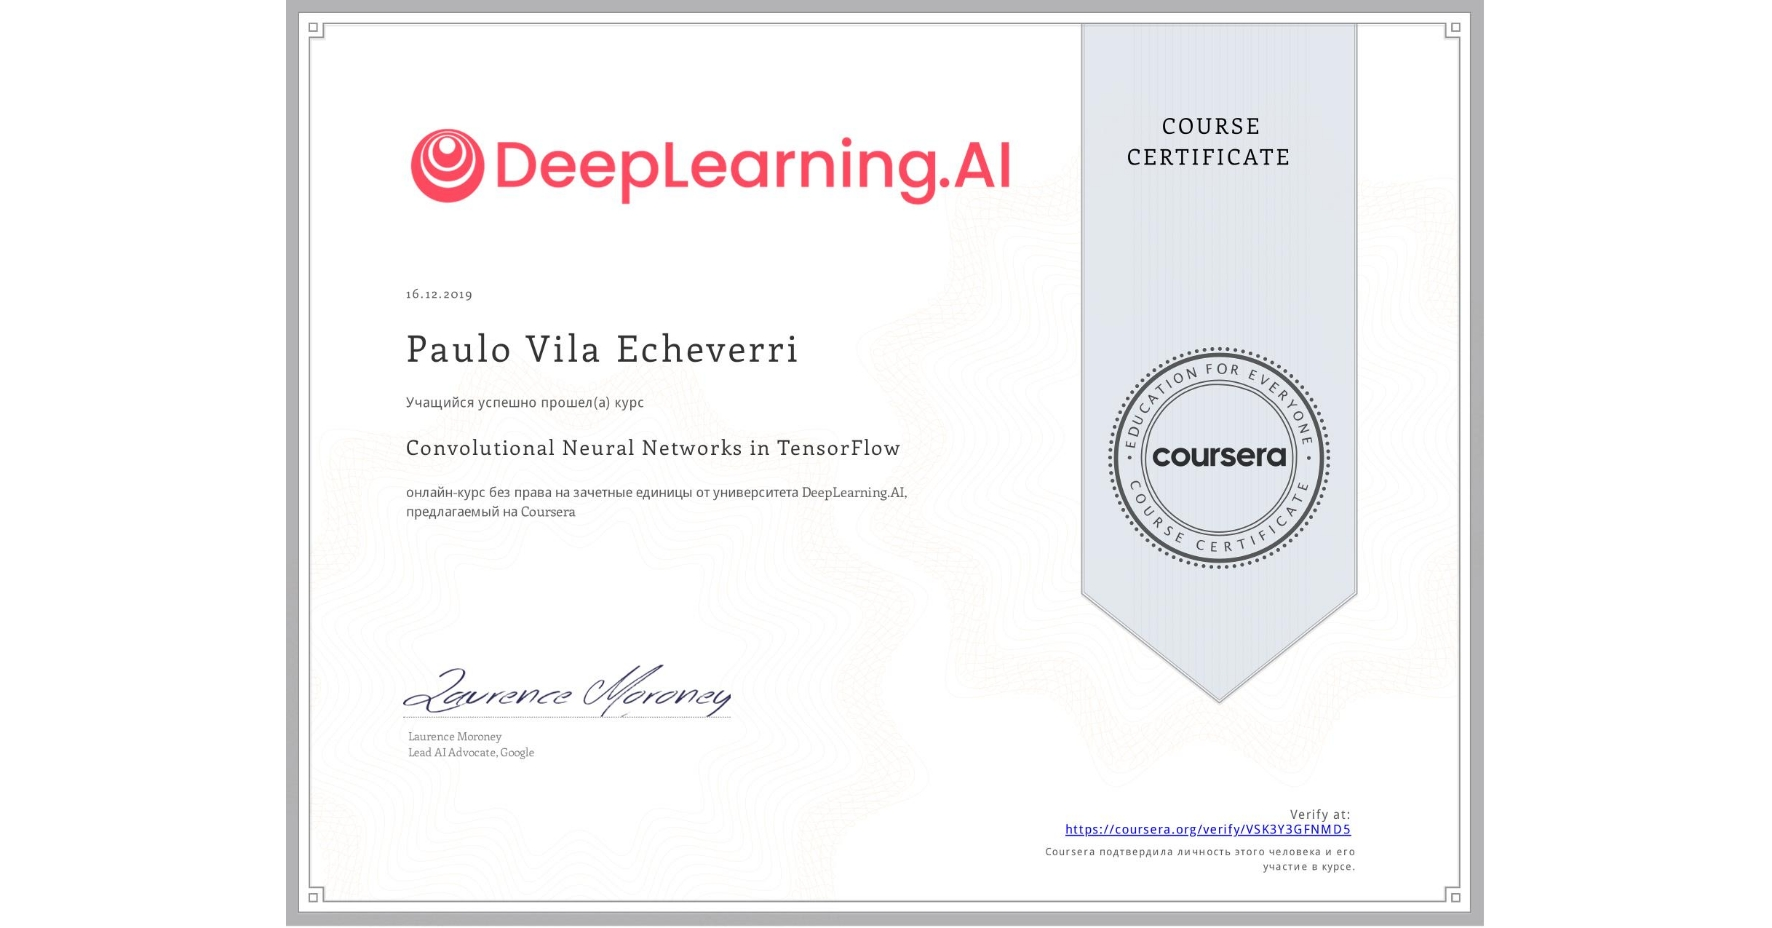 View certificate for Paulo Vila, Convolutional Neural Networks in TensorFlow, an online non-credit course authorized by DeepLearning.AI and offered through Coursera